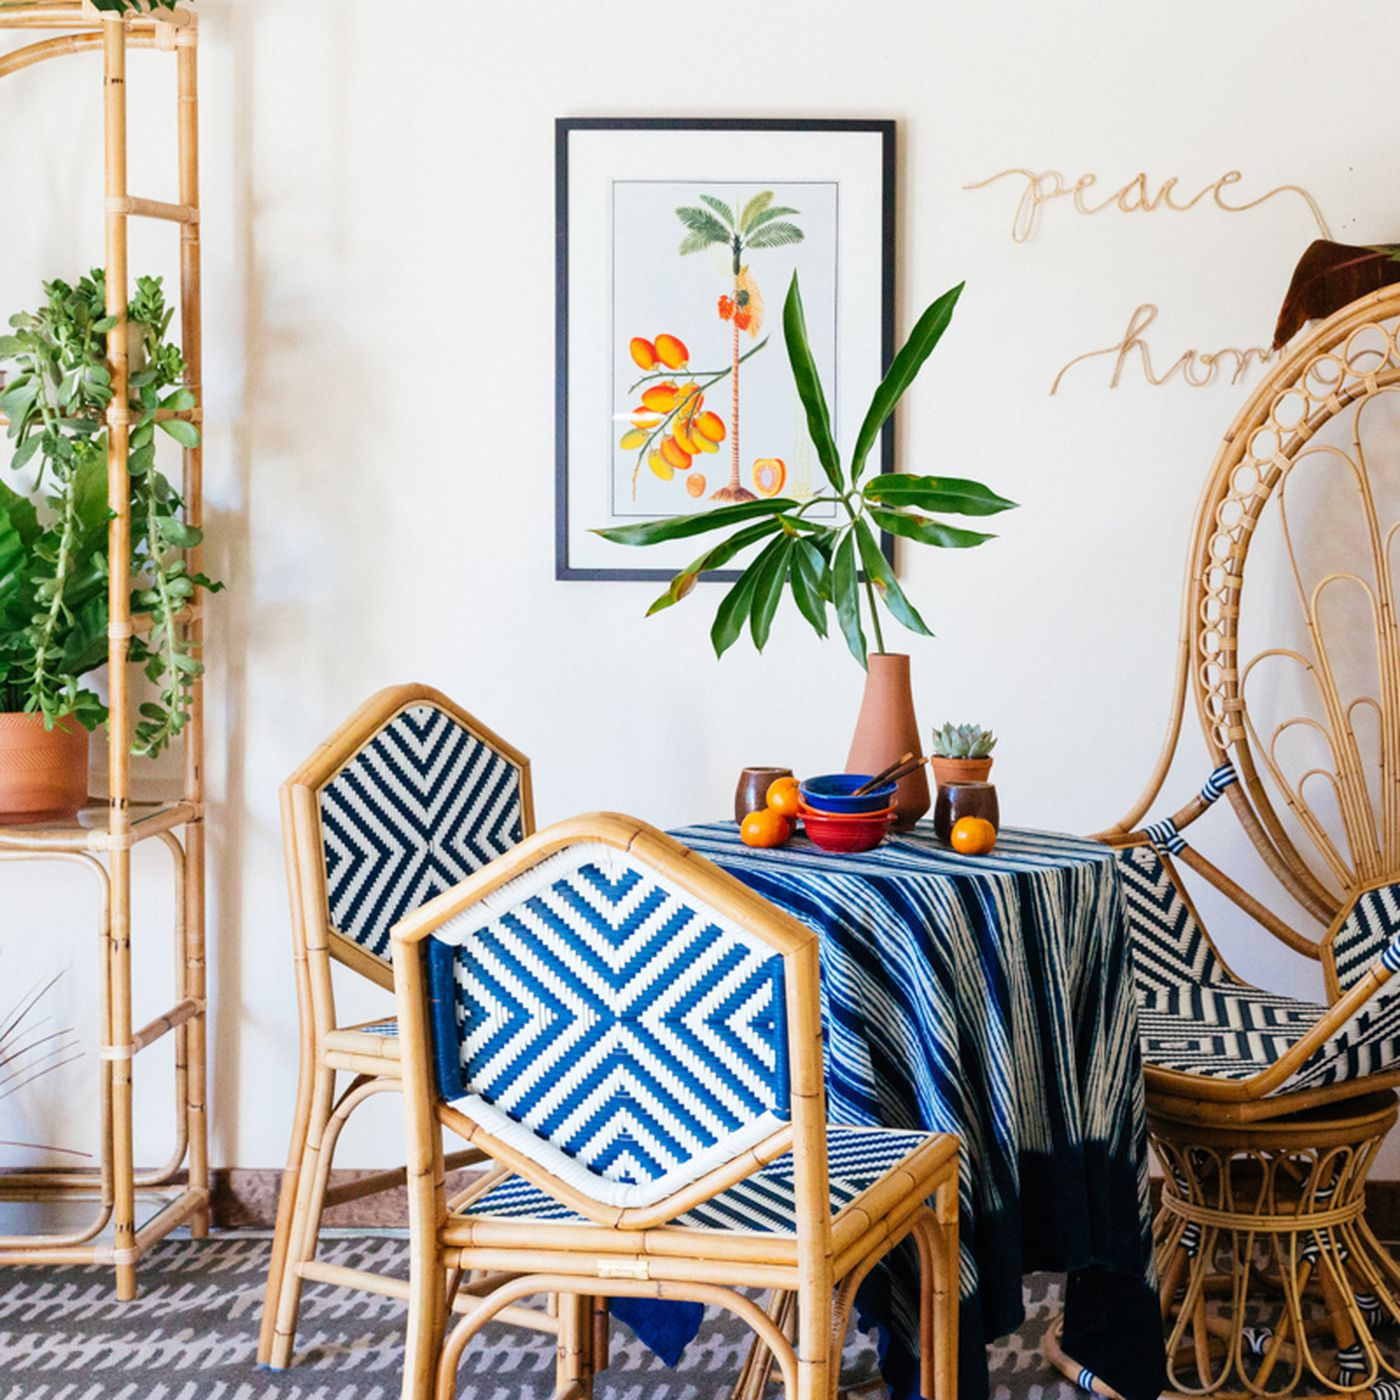 Rattan woven furniture: from Ikea to Anthropologie, chairs ...